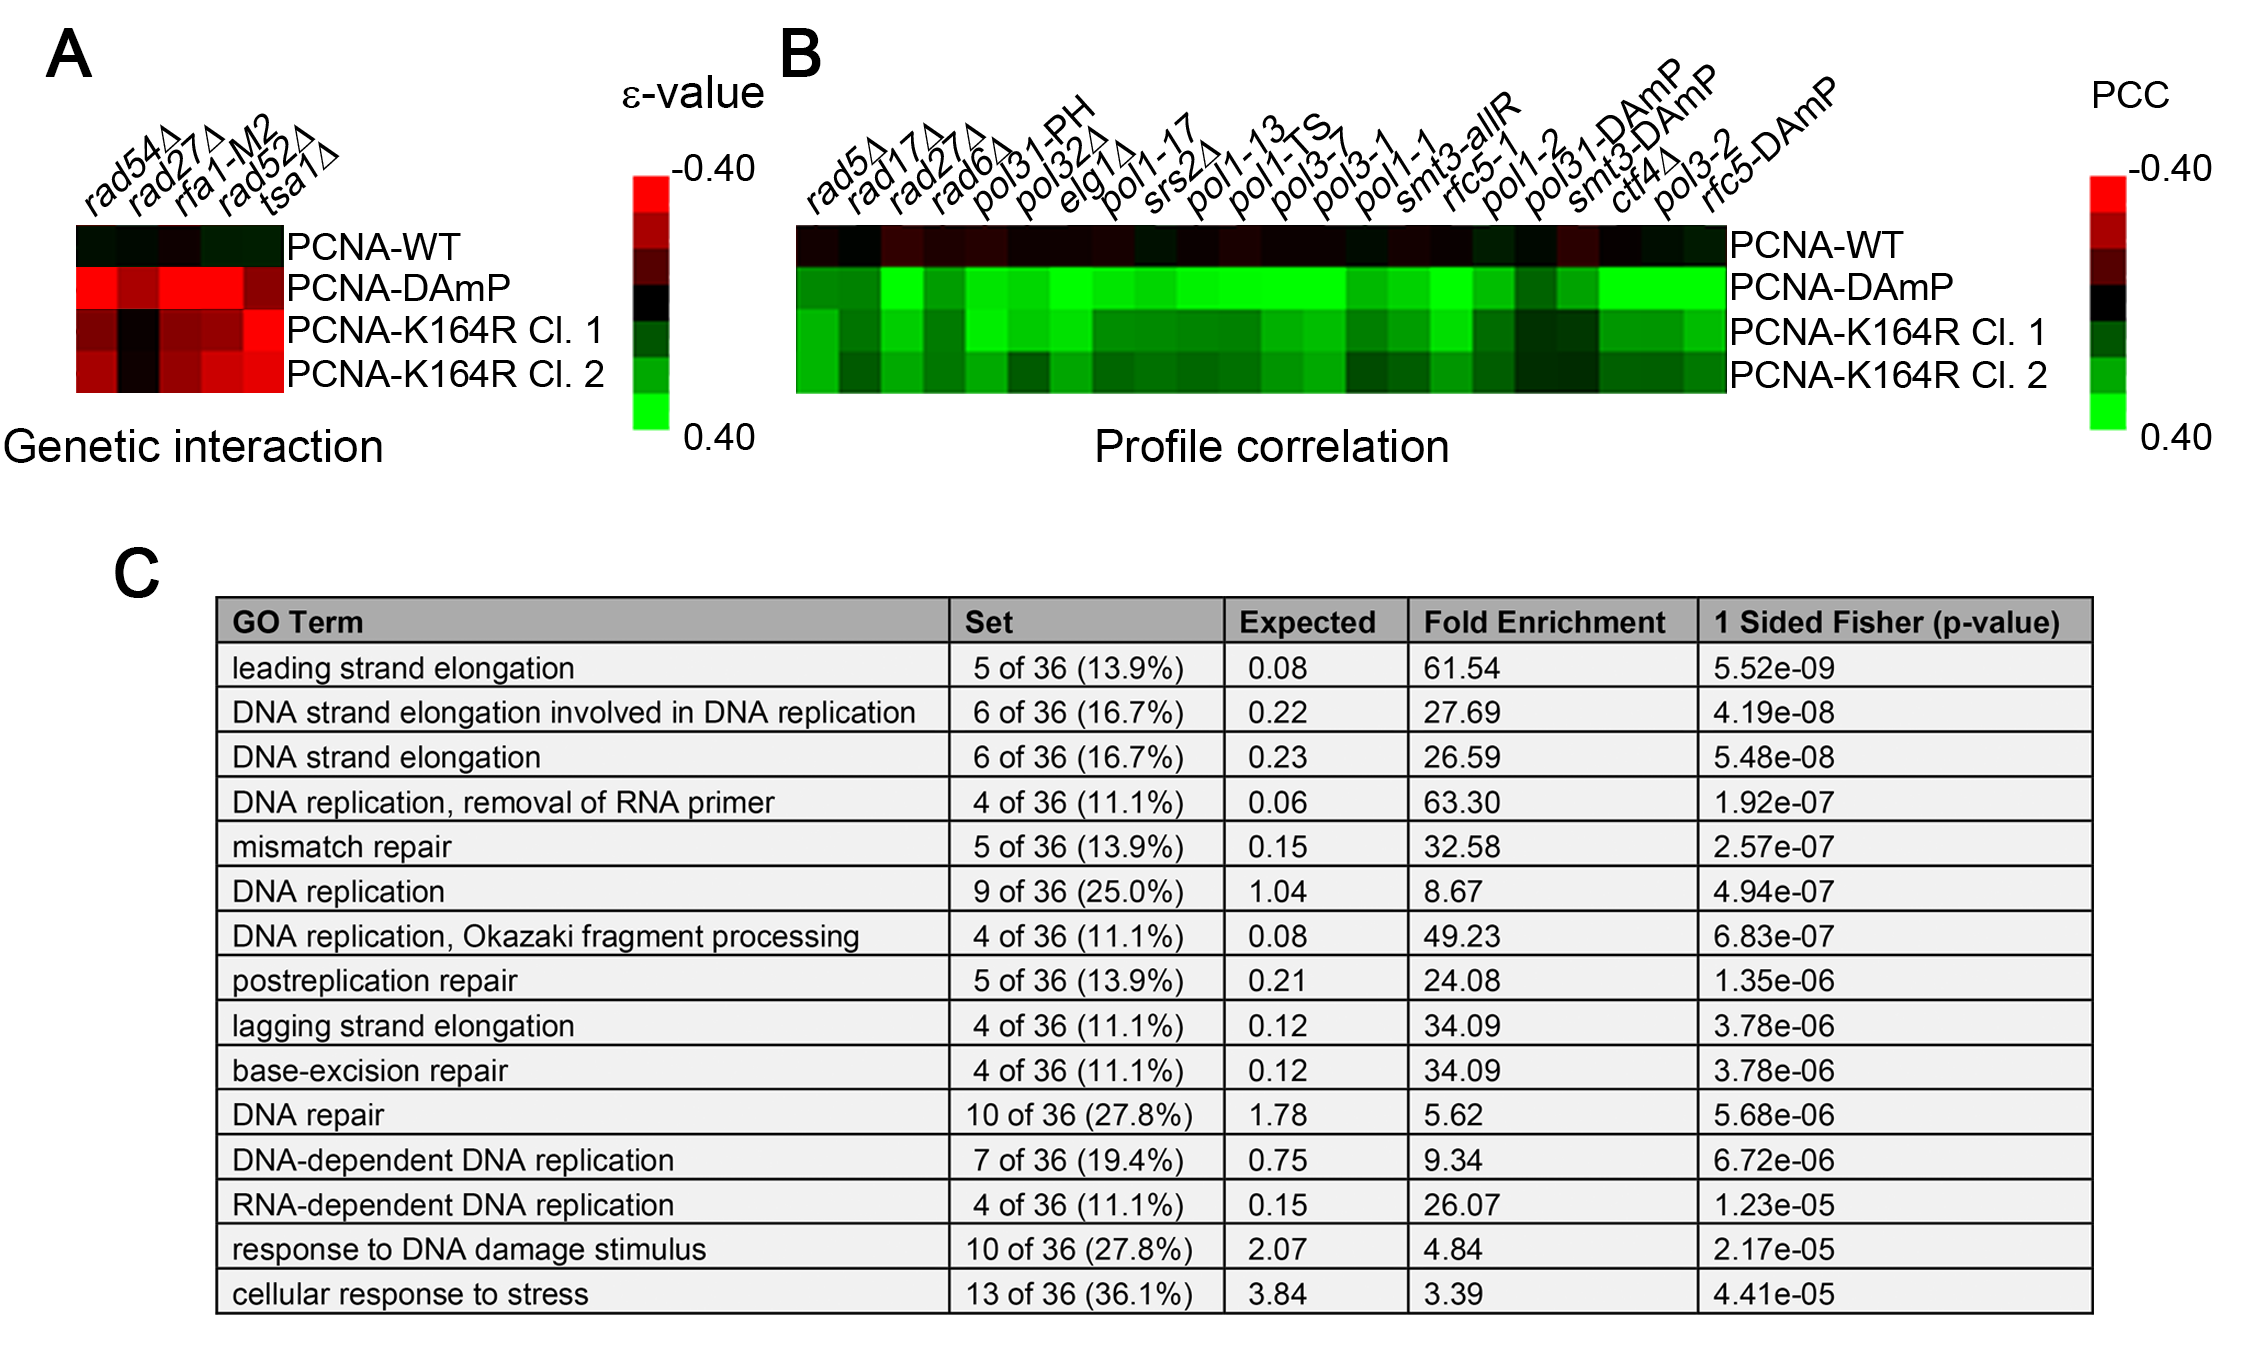 The PCNA-K164R SGA profile exhibits a limited set of direct genetic interactions but correlates strongly with other replication mutants.